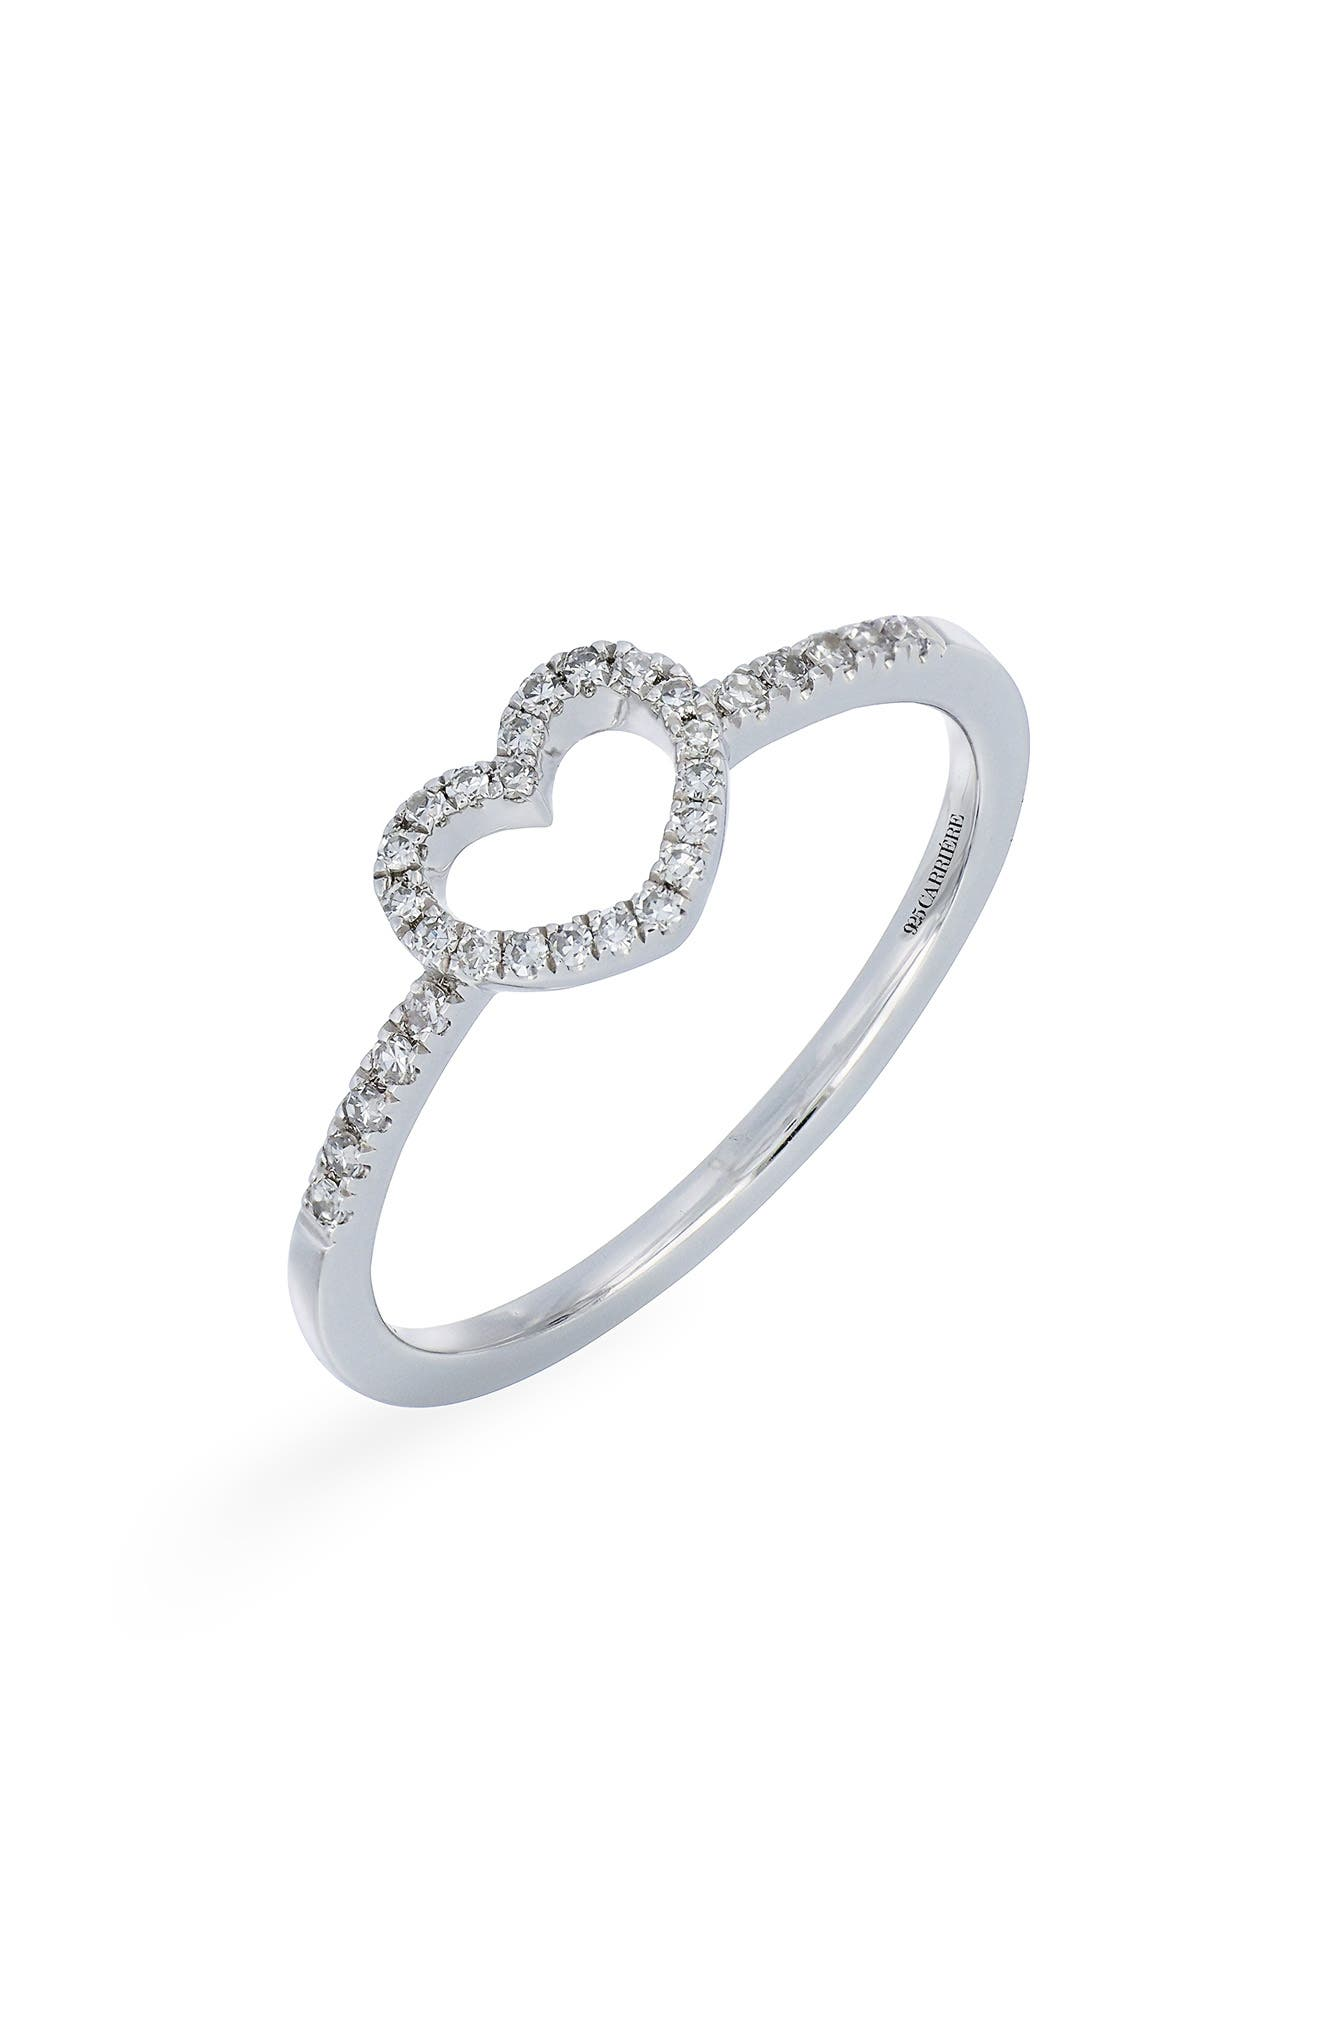 Carrière Open Heart Diamond Ring,                             Main thumbnail 1, color,                             STERLING SILVER/ DIAMOND